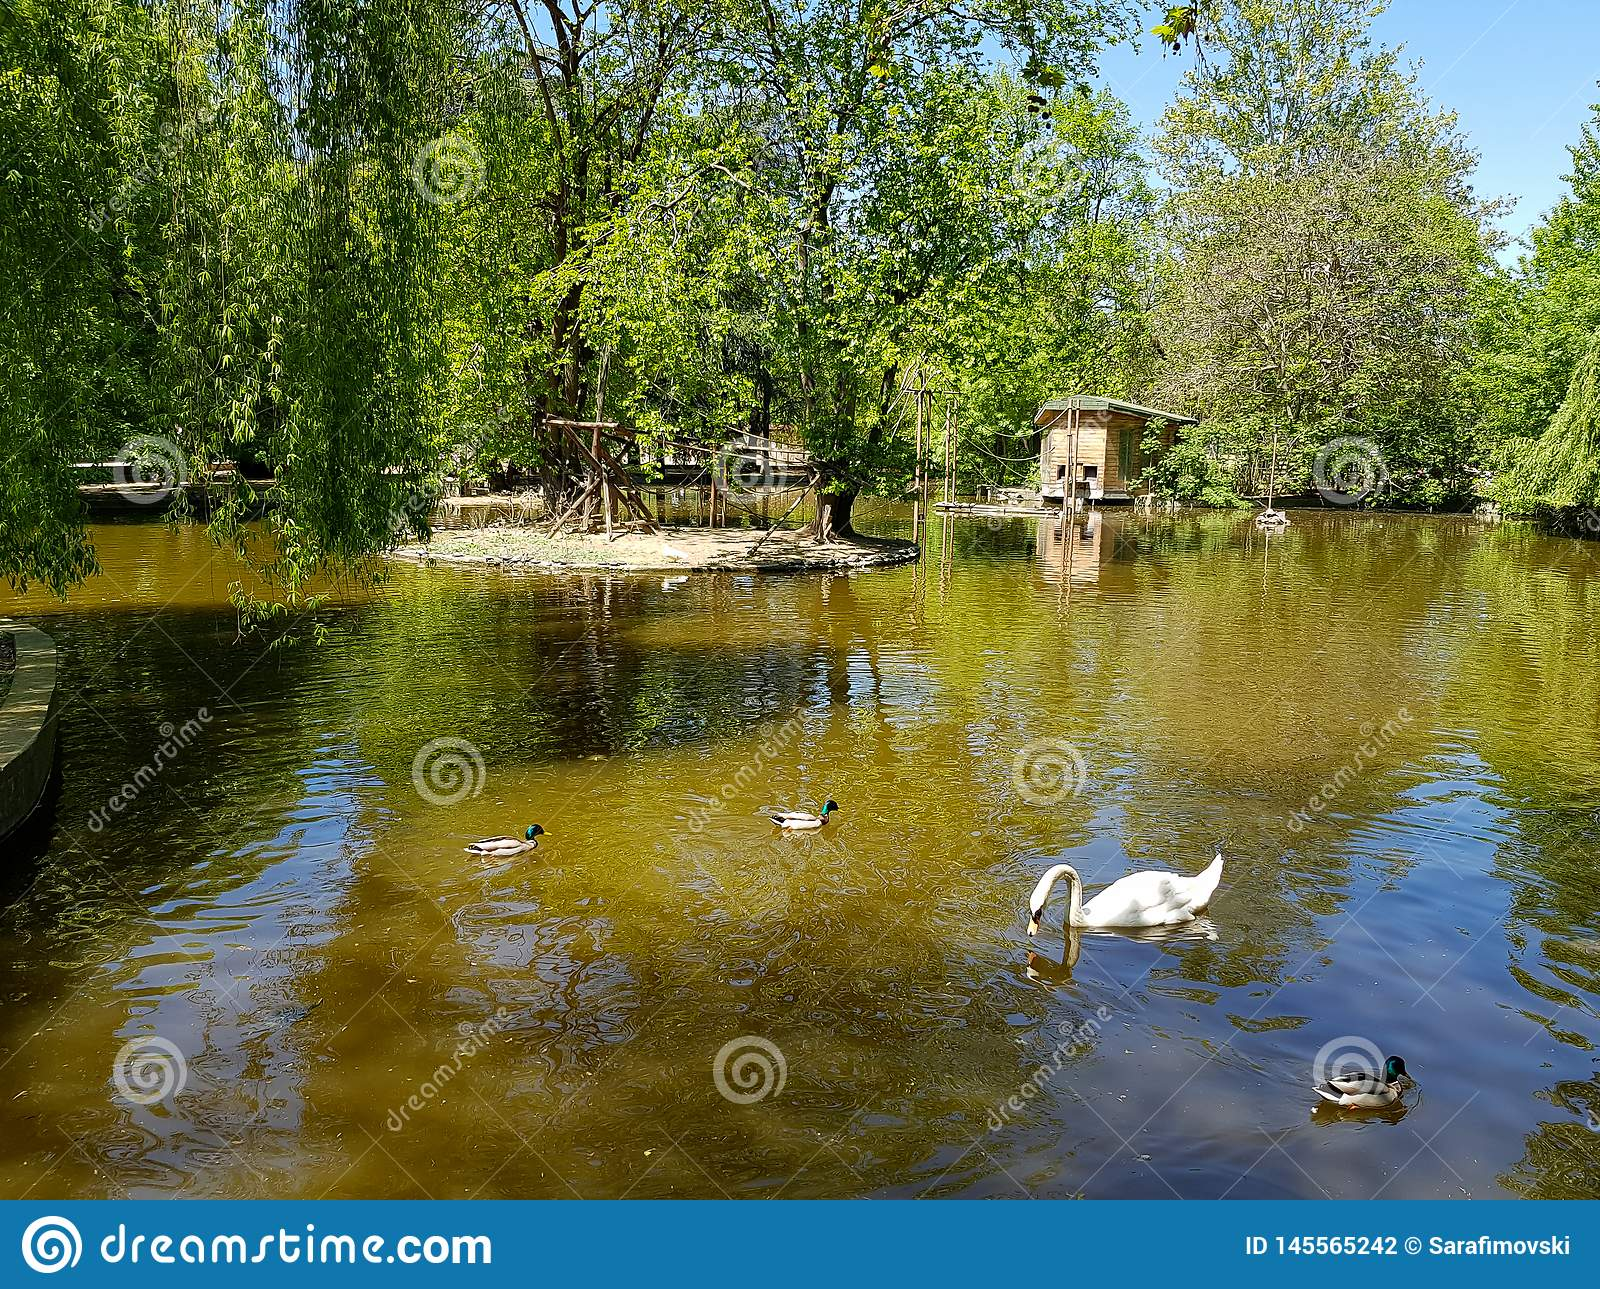 A white swan swimming in the peaceful pond or lake with ducks around it.